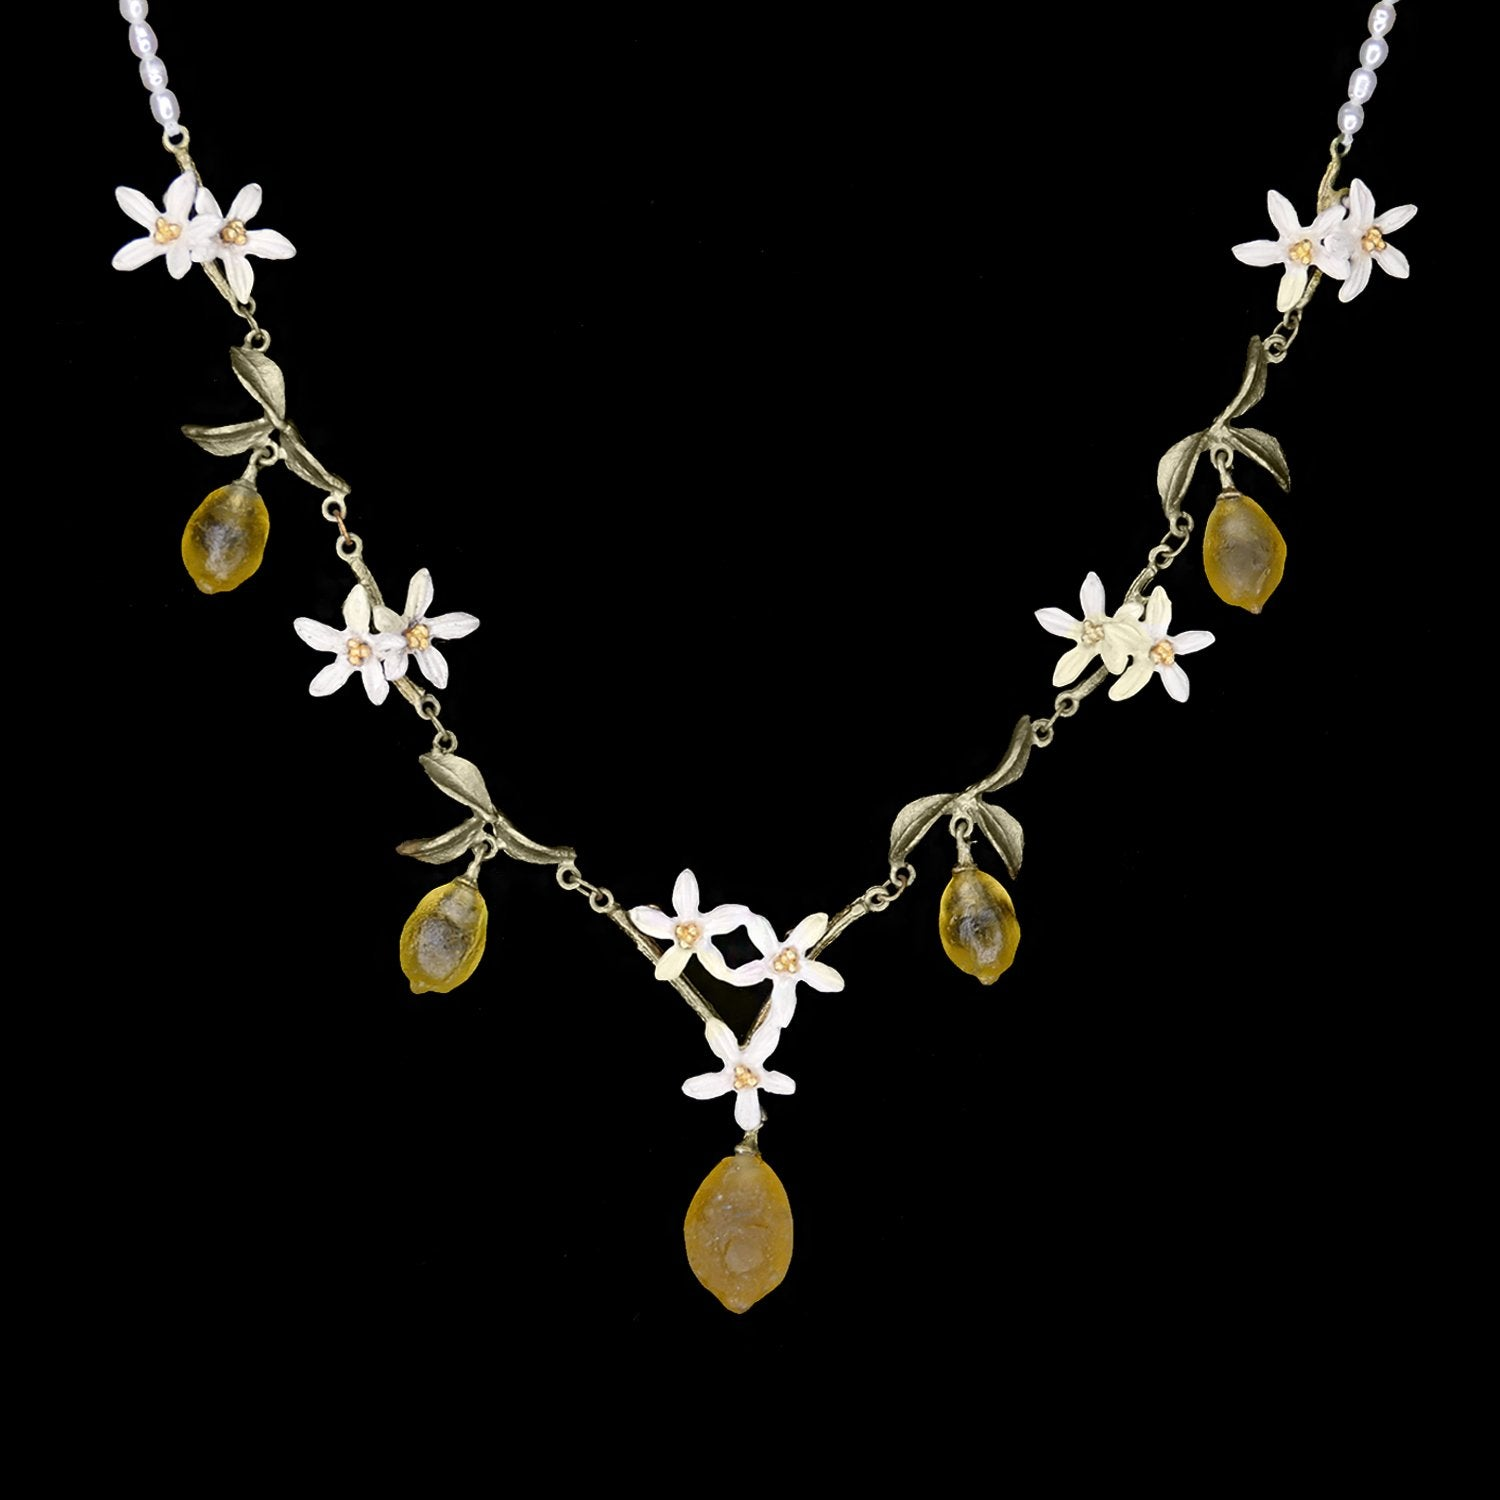 Lemon Drop Necklace - Pearls